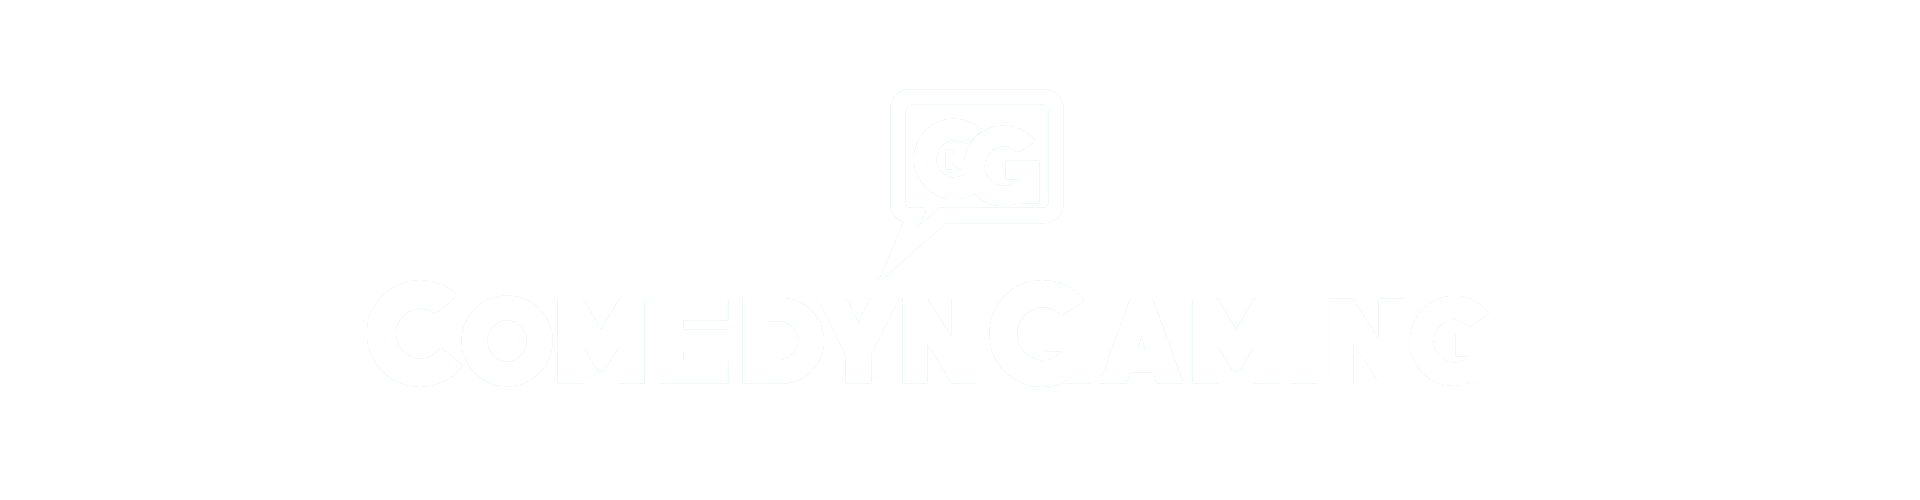 ComedyNGaming